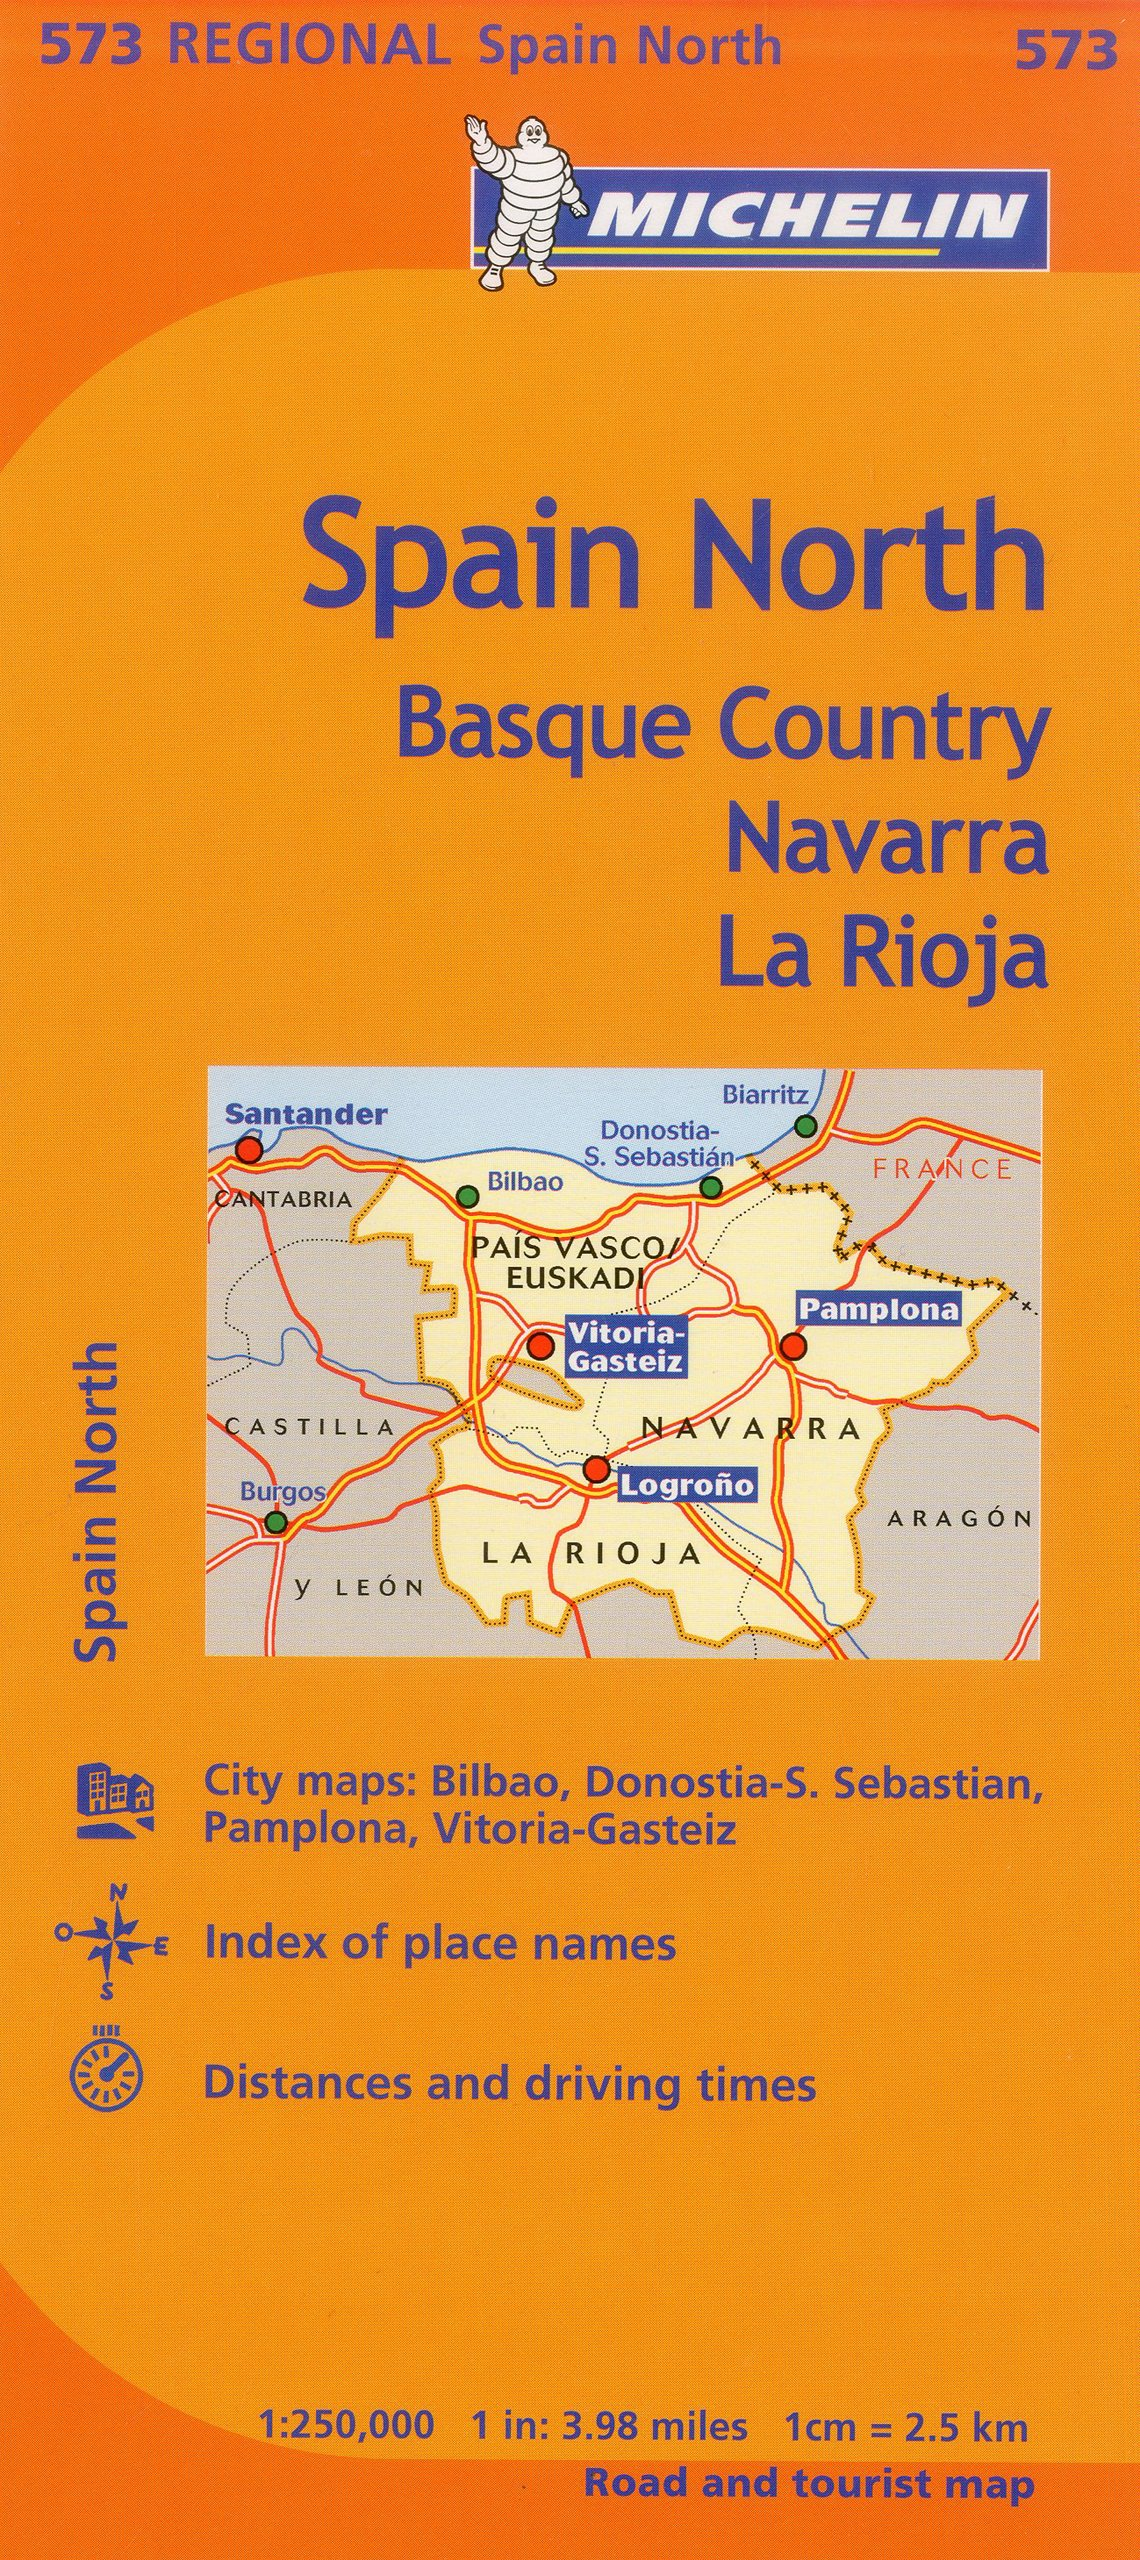 Map Of Spain Navarra.Michelin Spain North Basque Country Navarra La Rioja Map 573